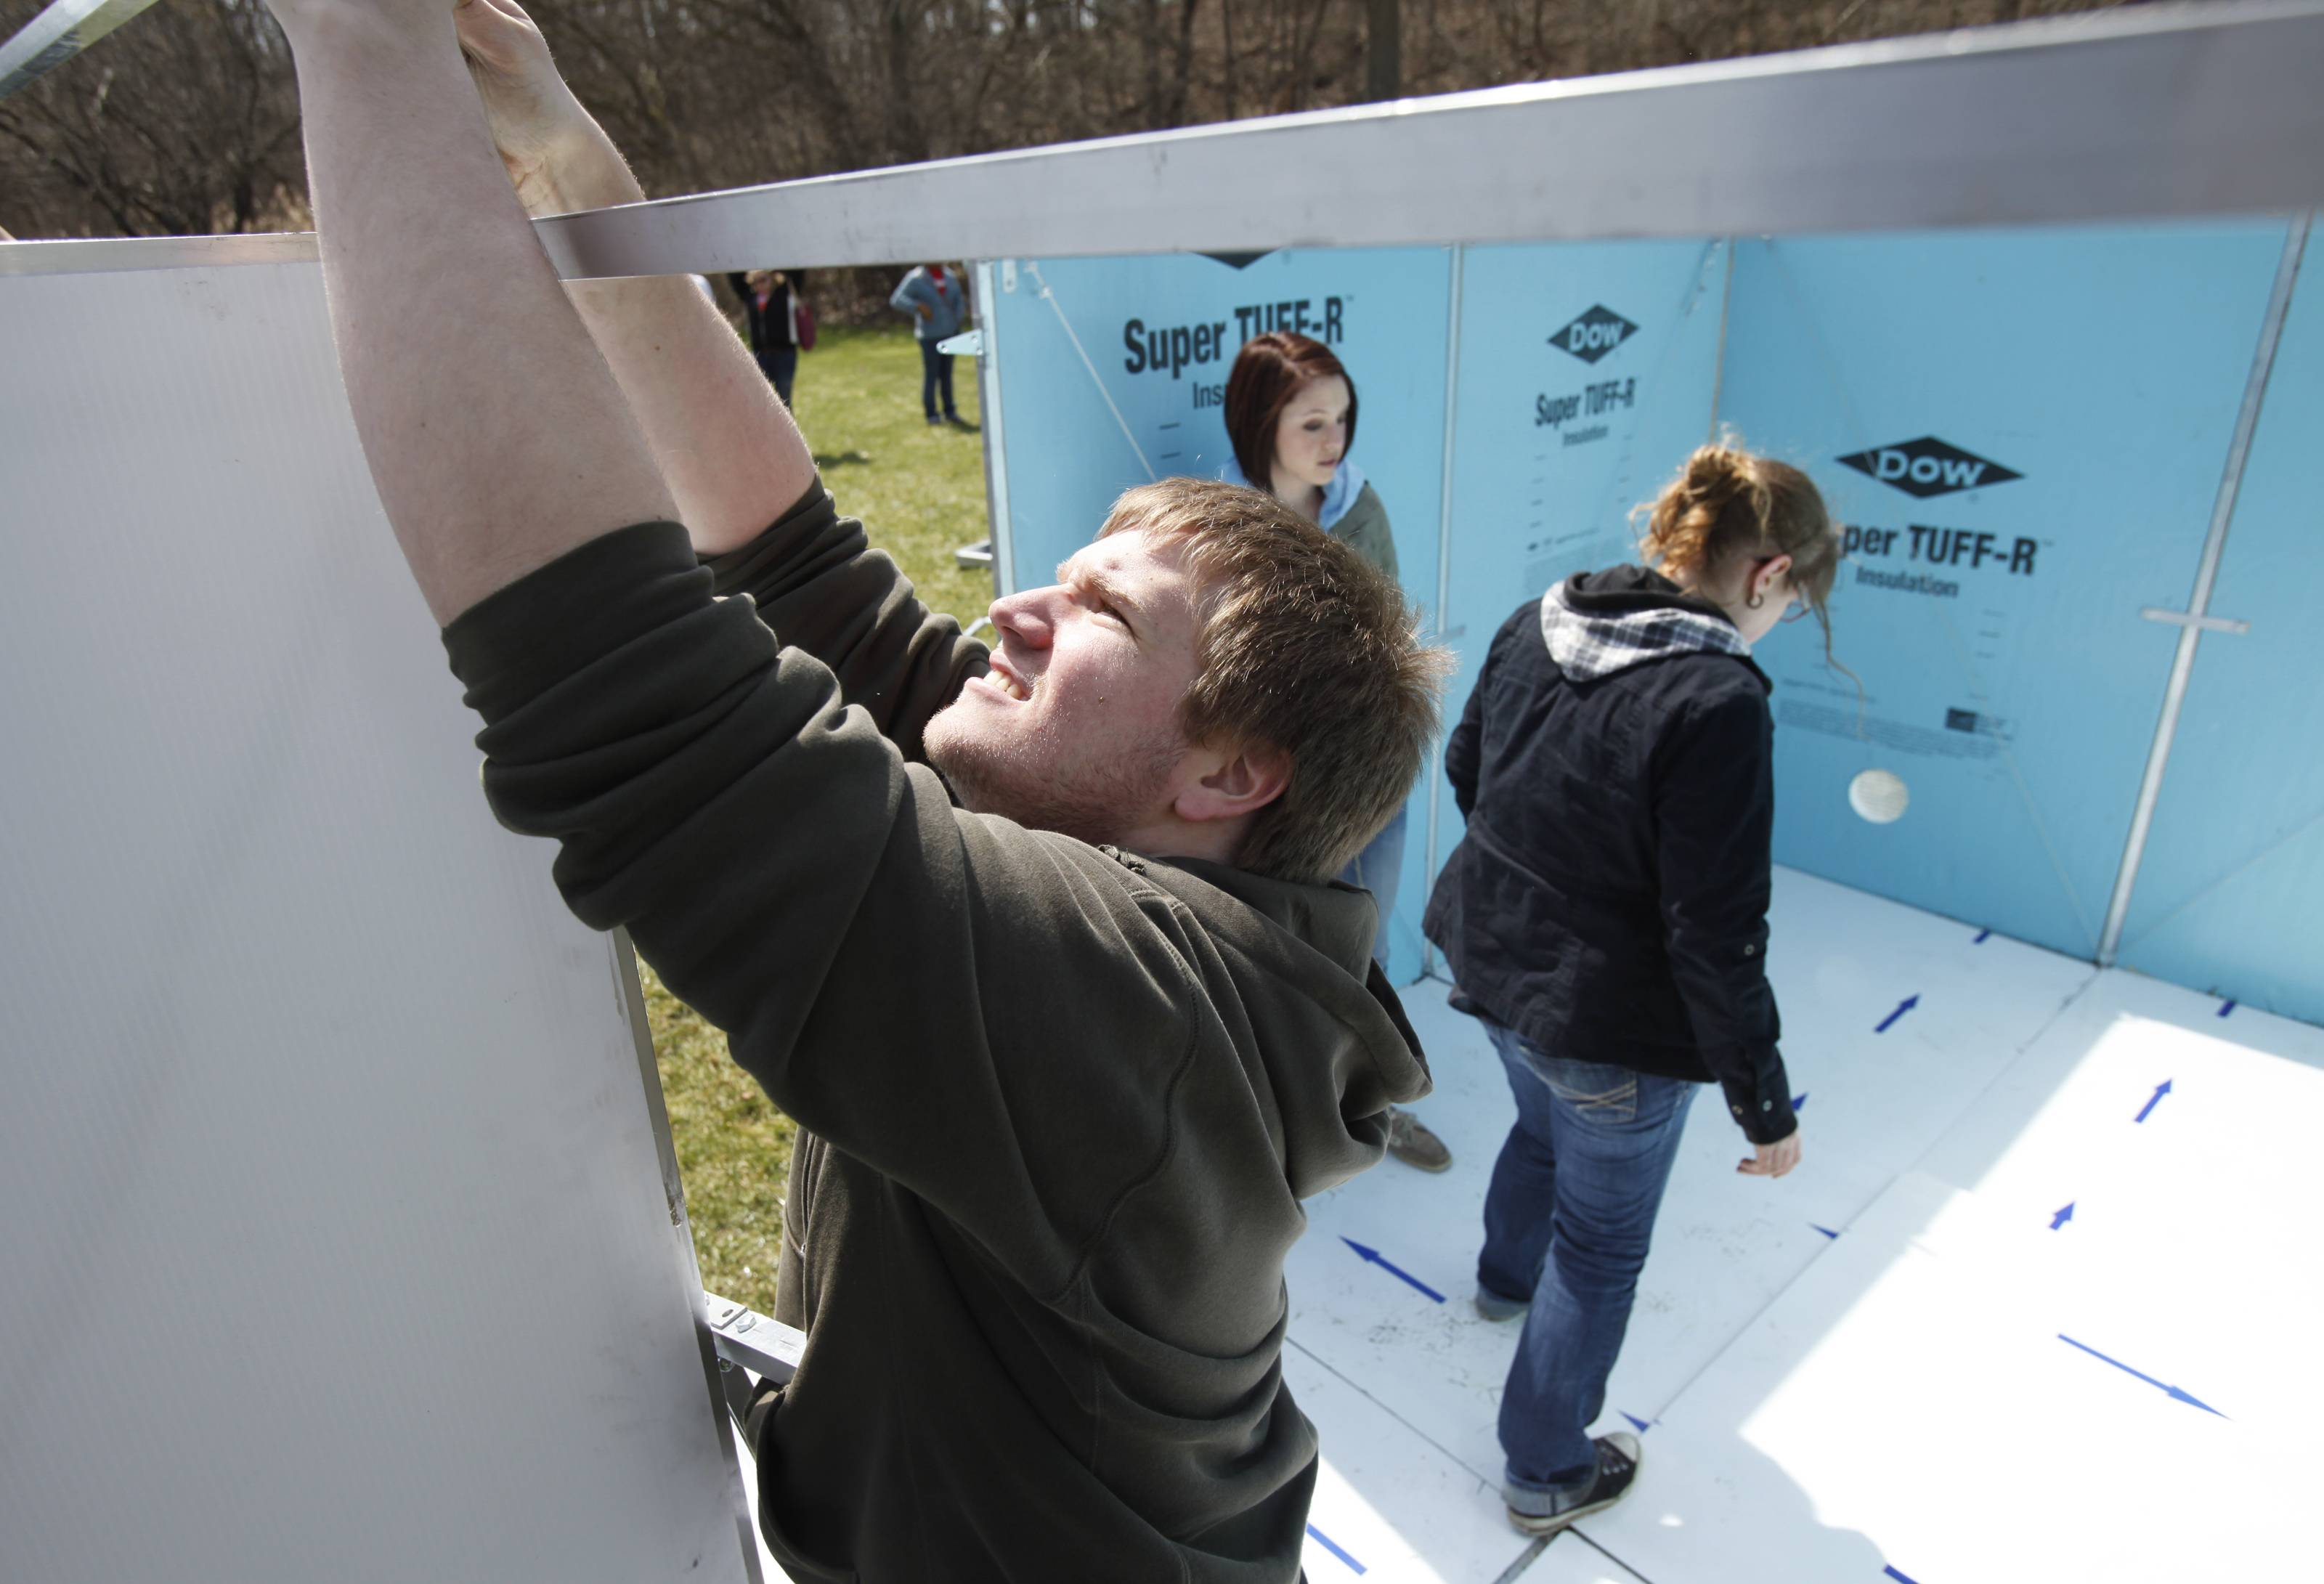 Judson University sophomore architecture student Josh Papic secures part of the support structure for his team's emergency shelter during a timed test Wednesday afternoon at the school's Elgin campus. Working behind him are fellow architecture sophomores Sarah Martinez, center, and Britteny Kitchen.